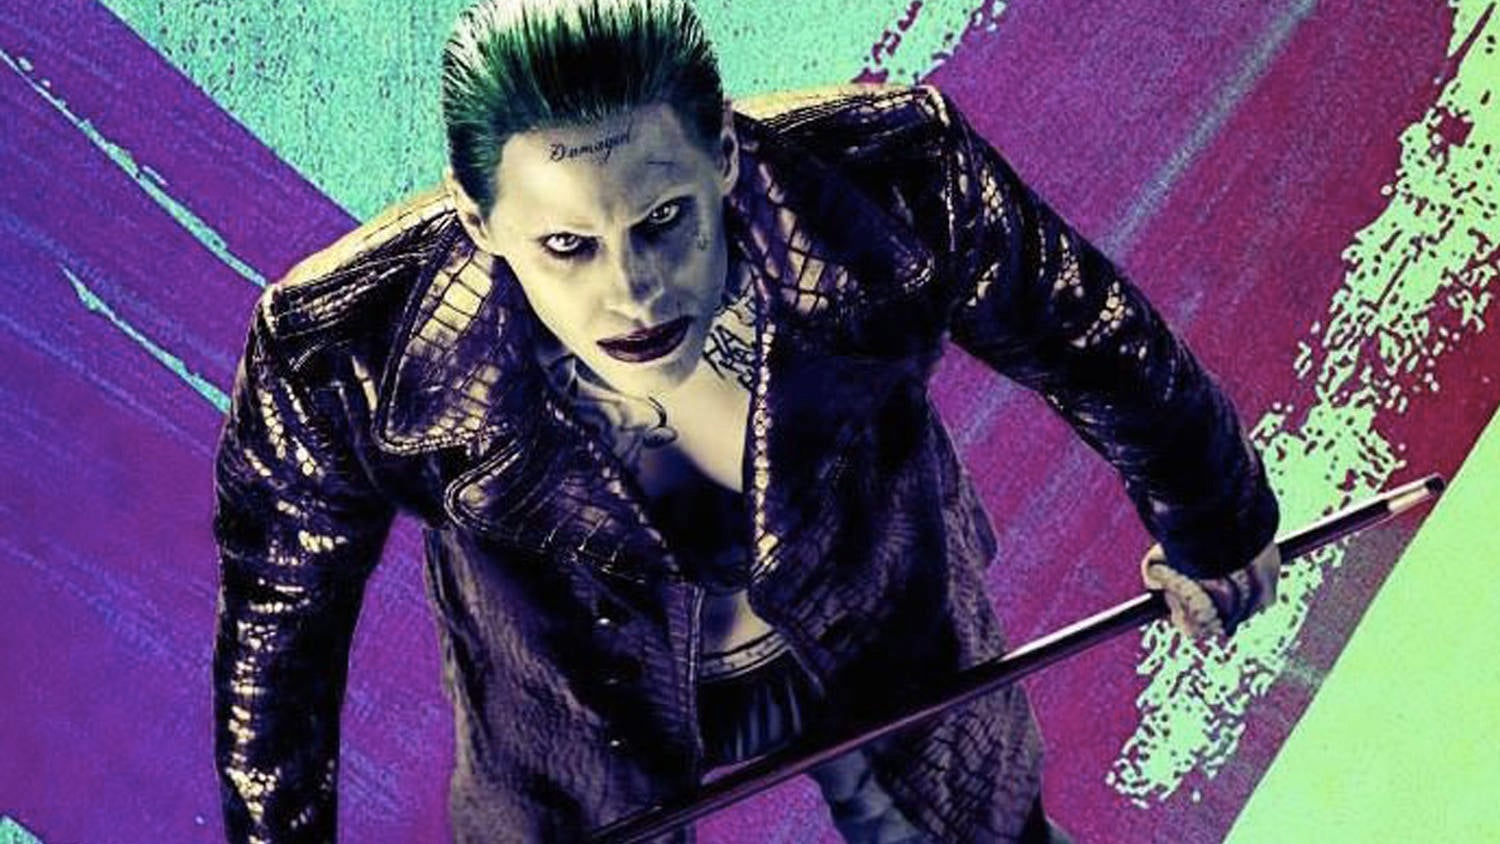 Jared Leto Joker Suicide Squad Reviews